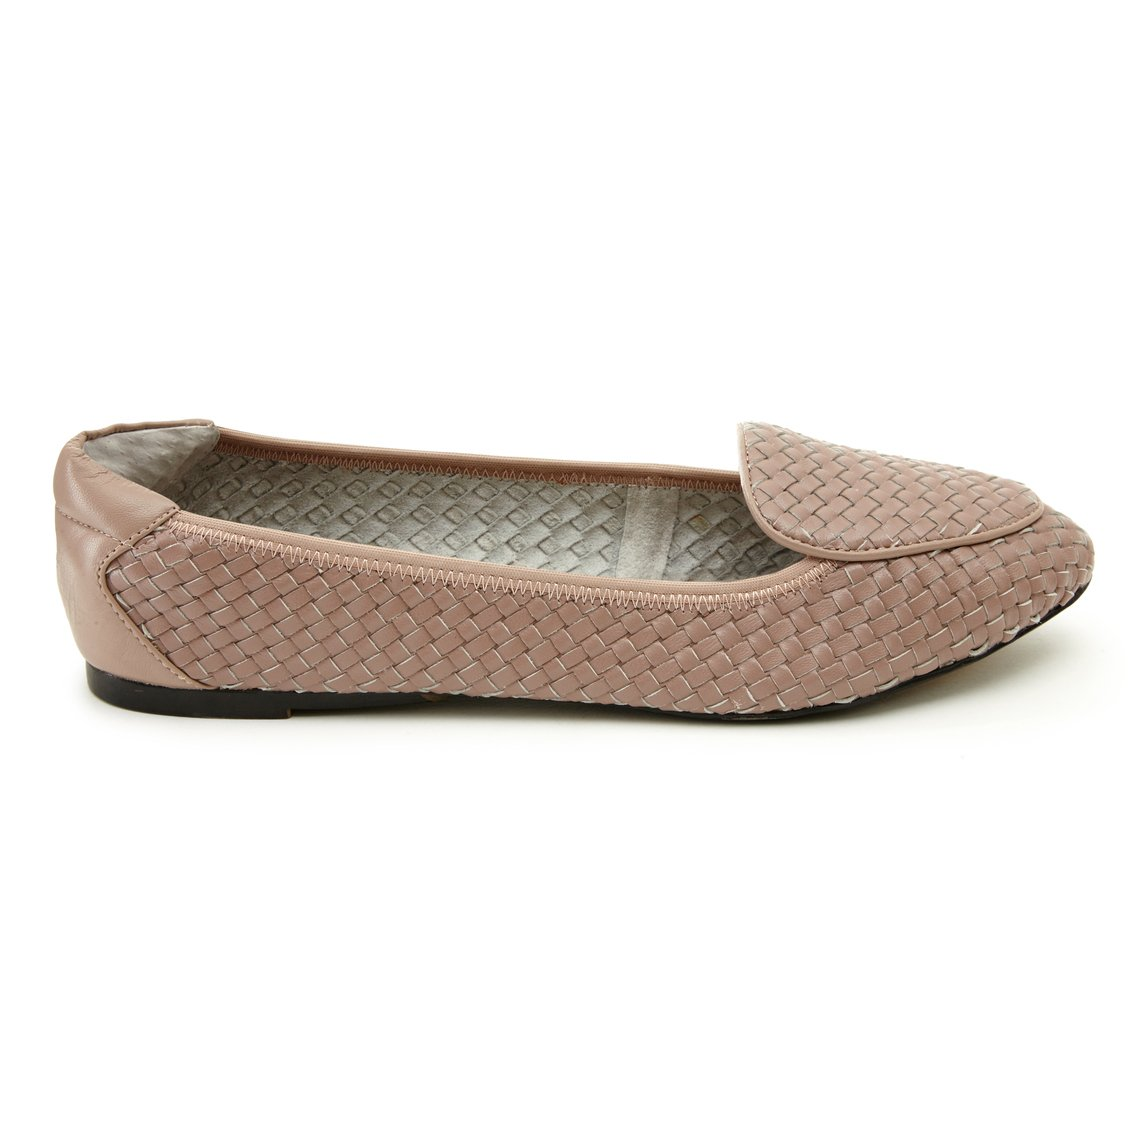 Clapham - Dusky Pink Woven Leather Loafers